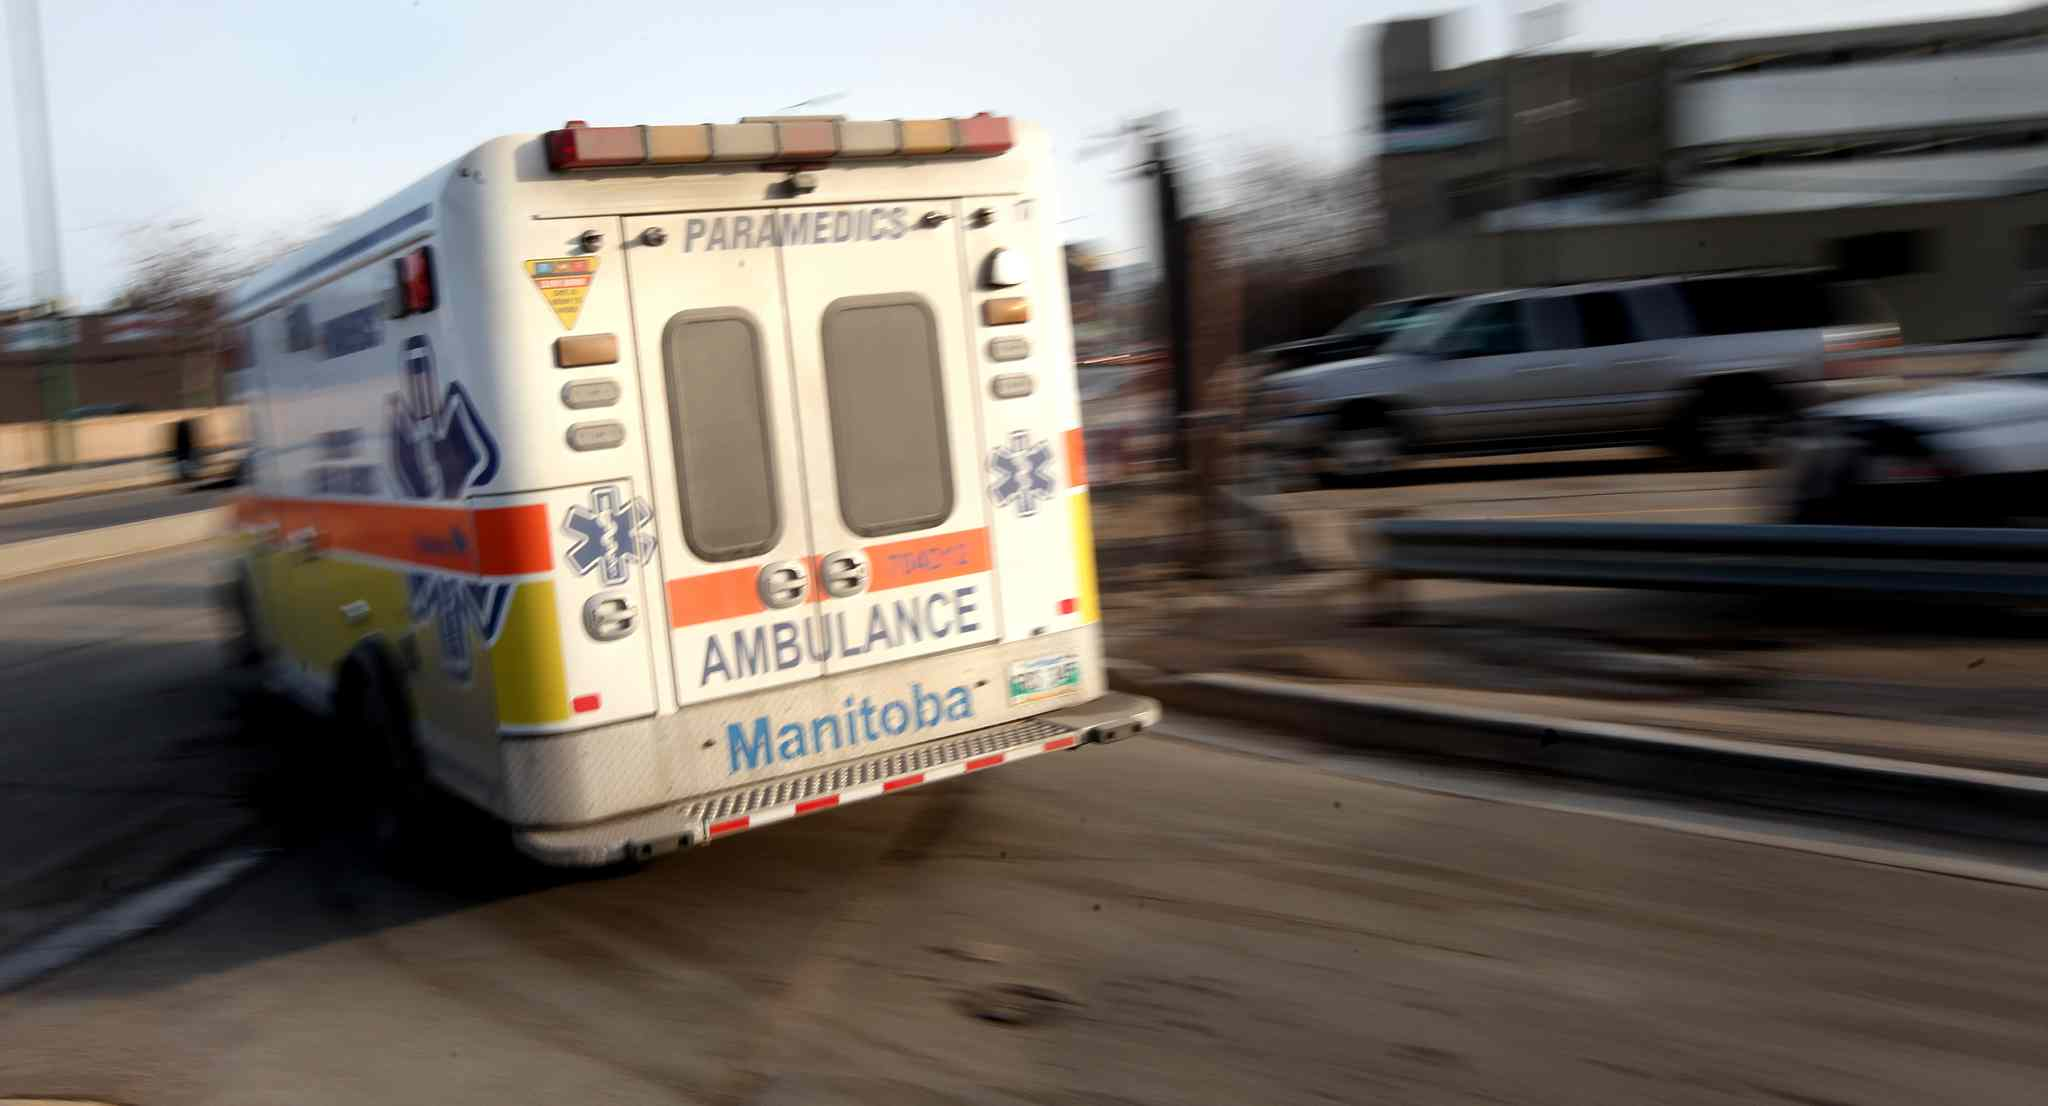 Chris Broughton said in 2012, Winnipeg ambulances made about 58,000 trips to the city's hospital emergency rooms but only 13 per cent of those patients were in critical condition.